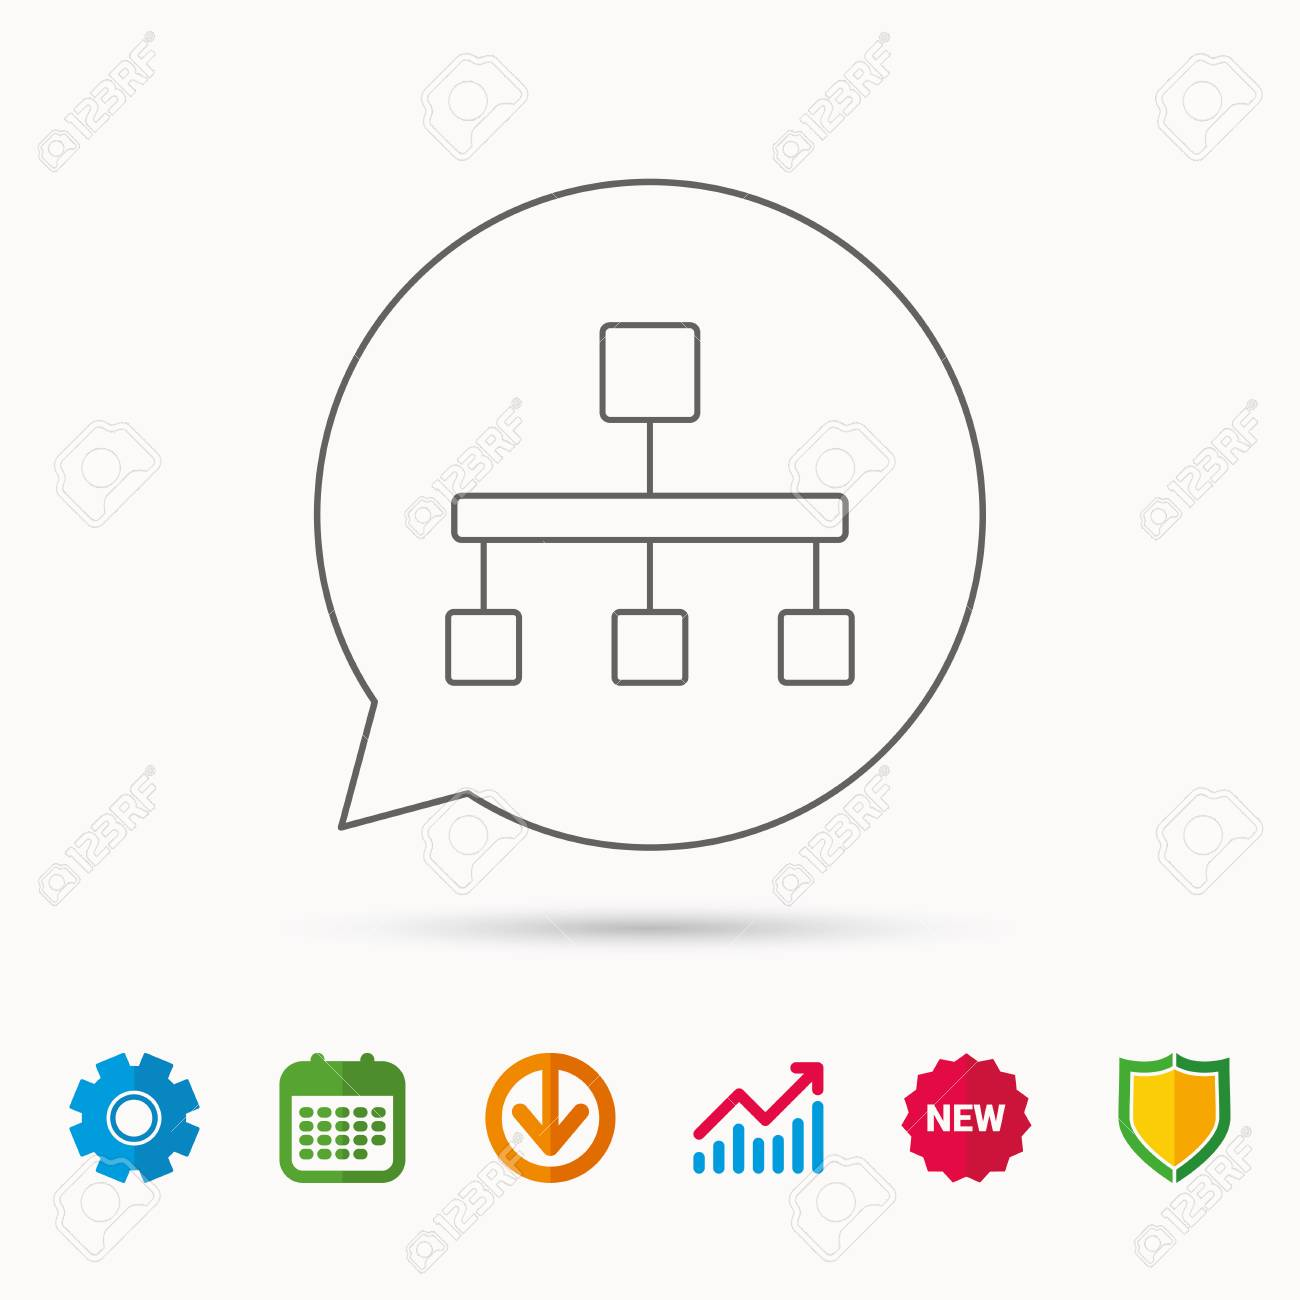 Hierarchy icon  Organization chart sign  Database symbol  Calendar,